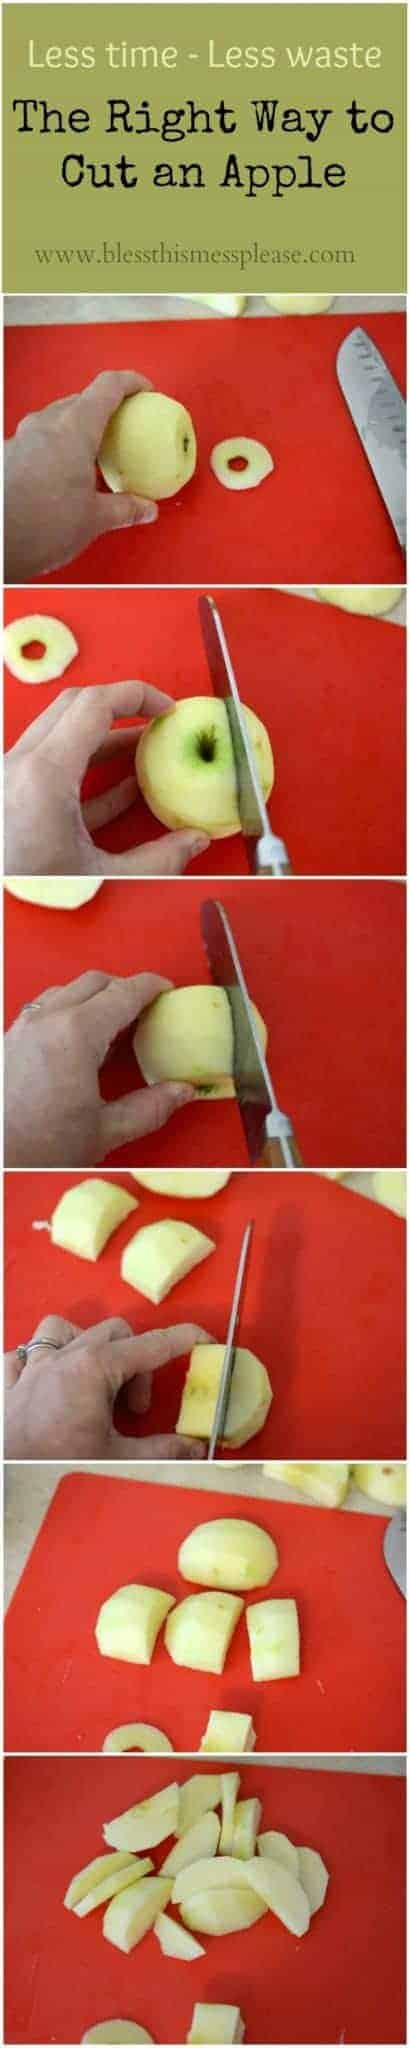 How to cut an apple from www.blessthismessplease.com Are you doing it right?!